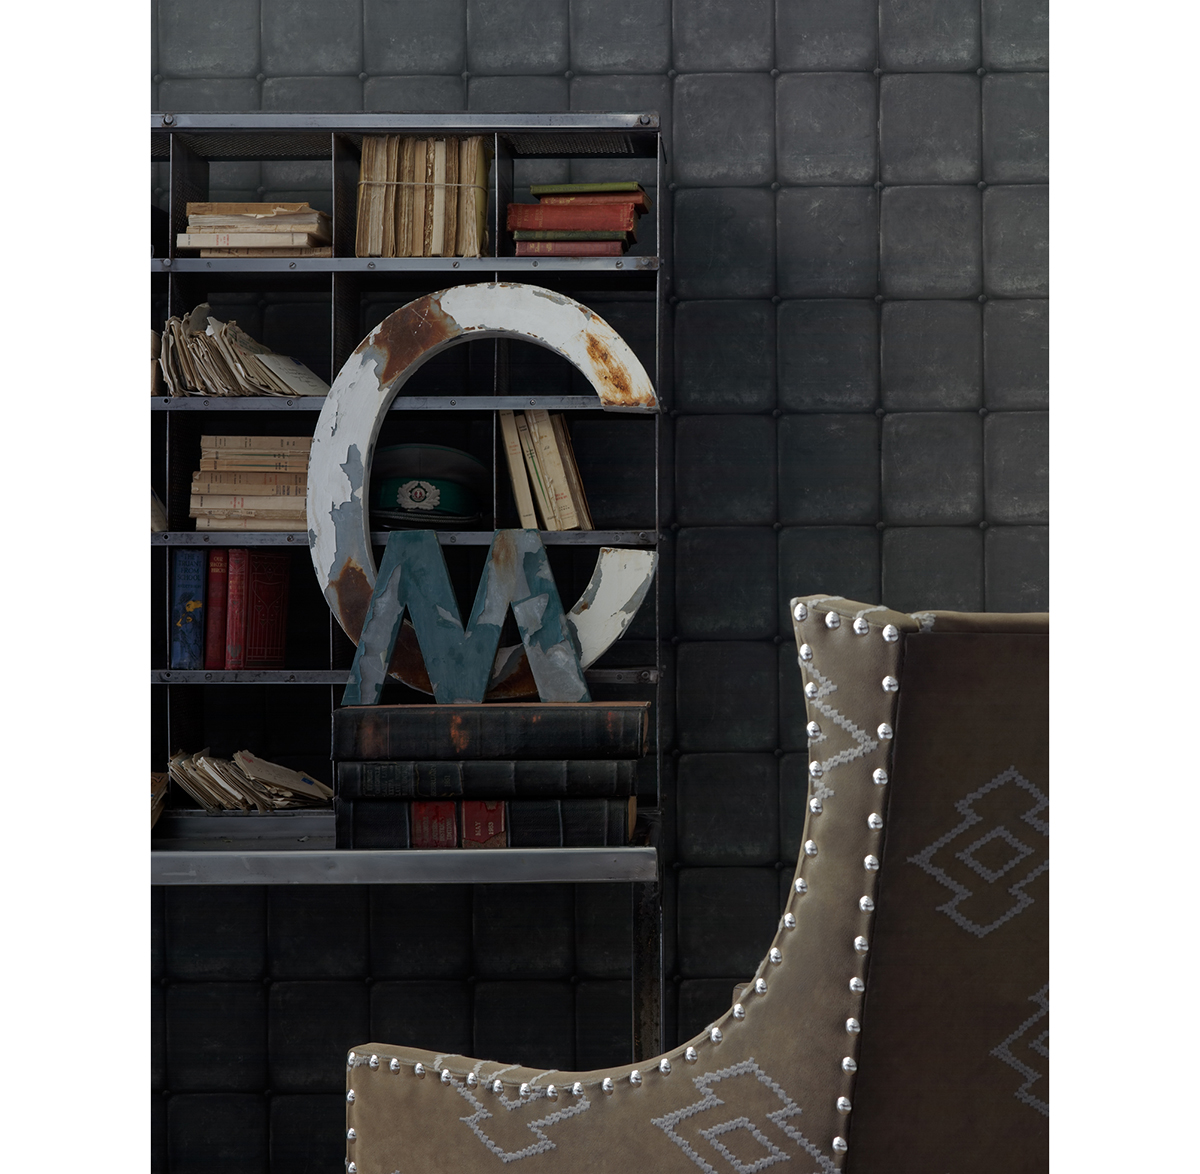 British Industrial Old Tile Wallpaper - Charcoal